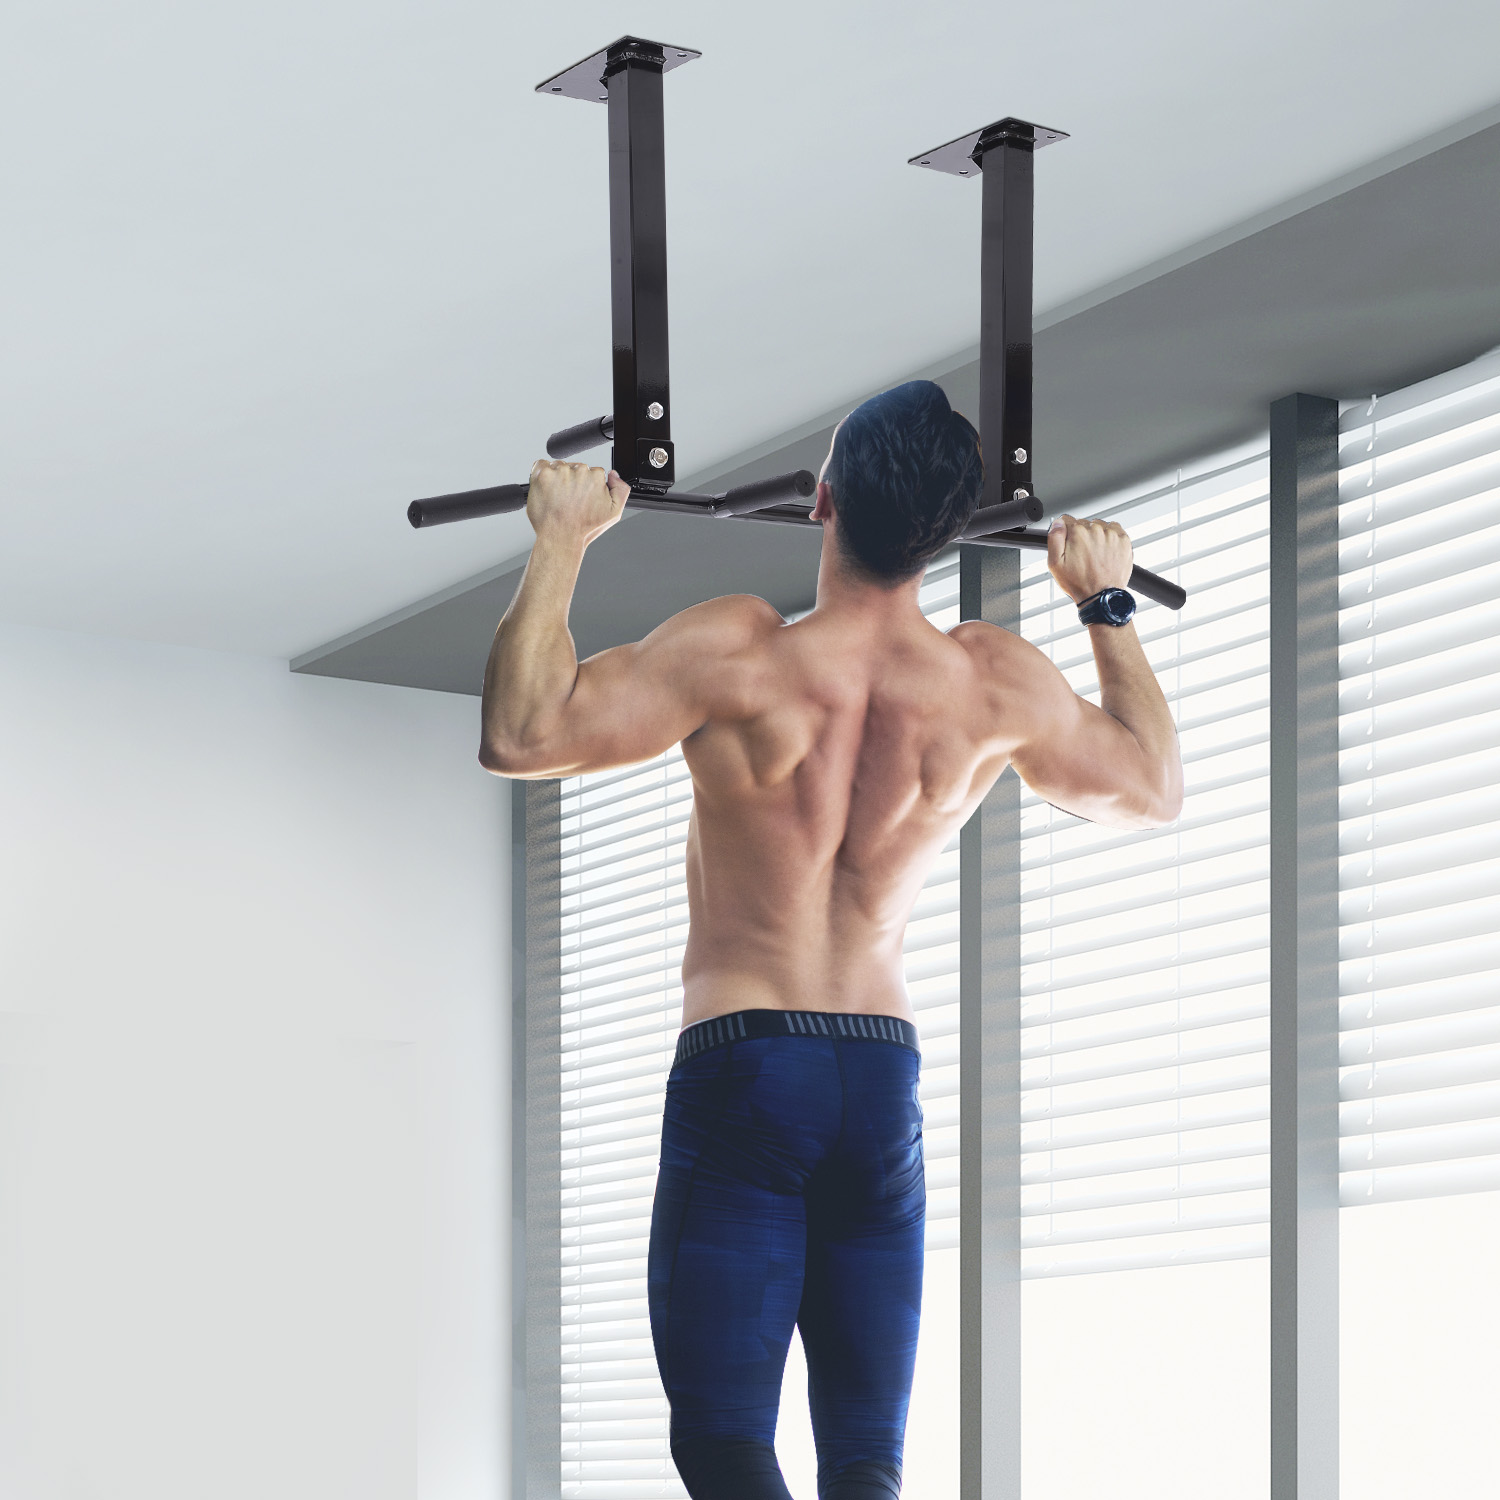 Ceiling Mounted Pull Up Bar Exercise Chin Up Bar Strength Training